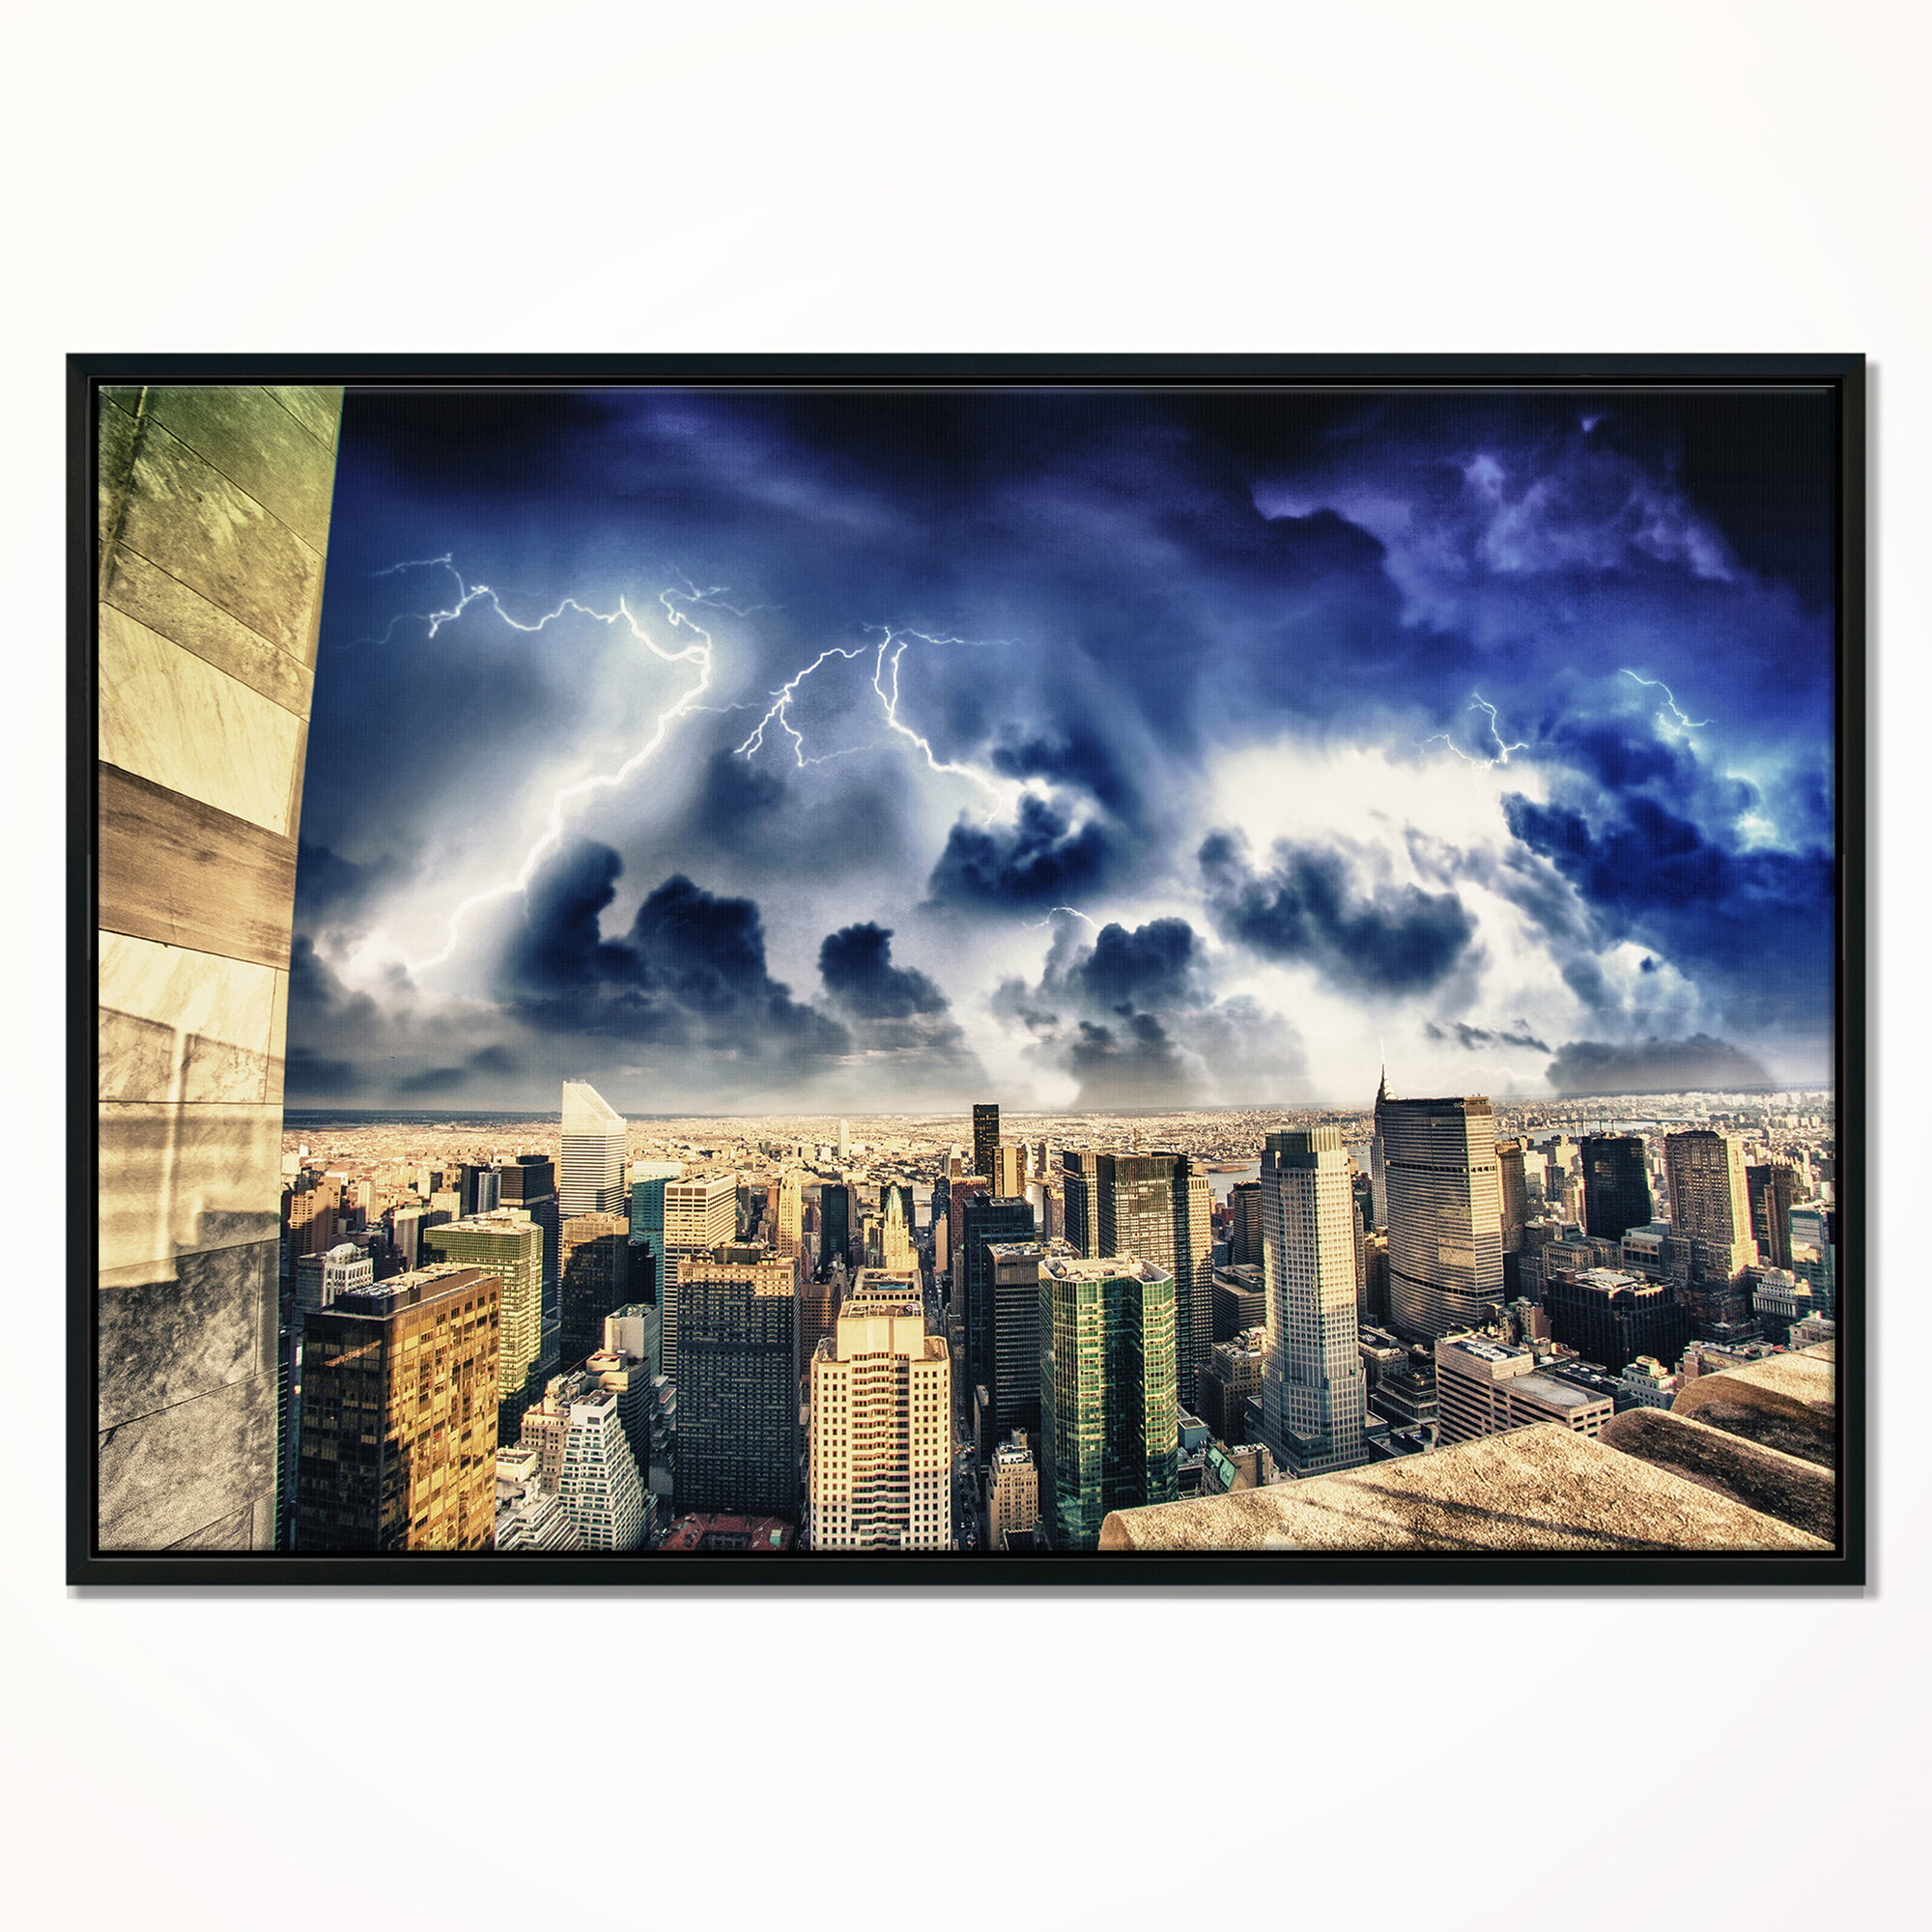 East Urban Home Storm Above Manhattan Skyscrapers Framed Photographic Print On Wrapped Canvas Wayfair